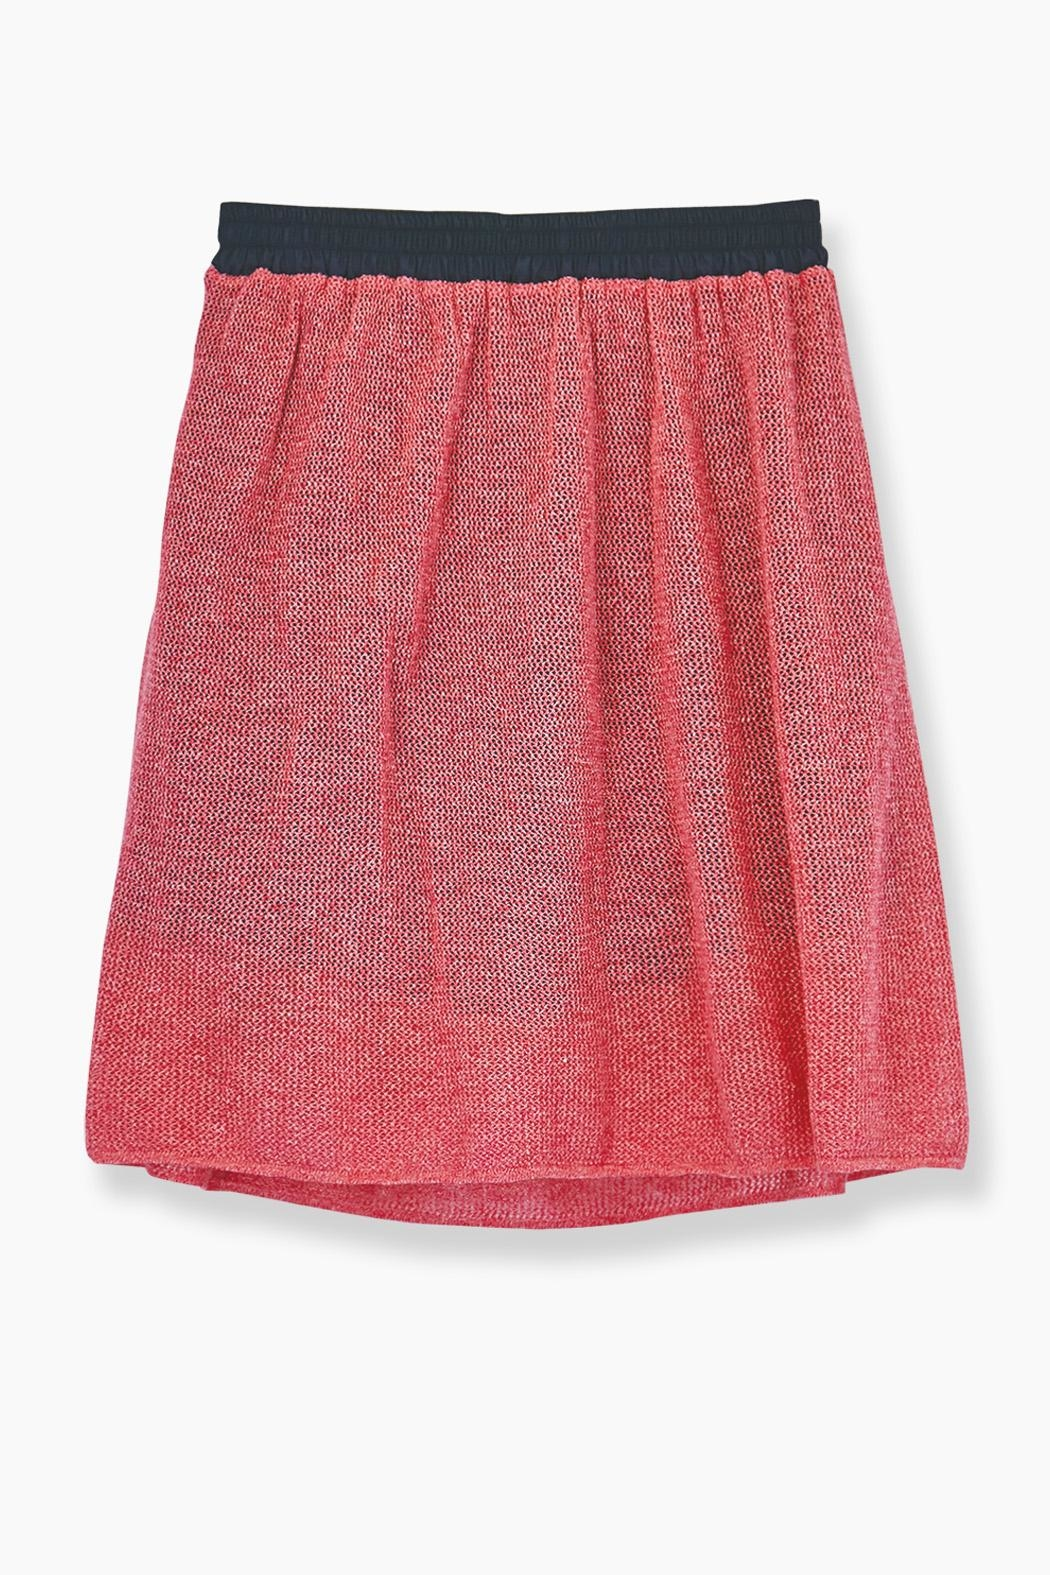 WENHUA DUVERGÉ Pink Organic Cotton Skirt - Back Cropped Image